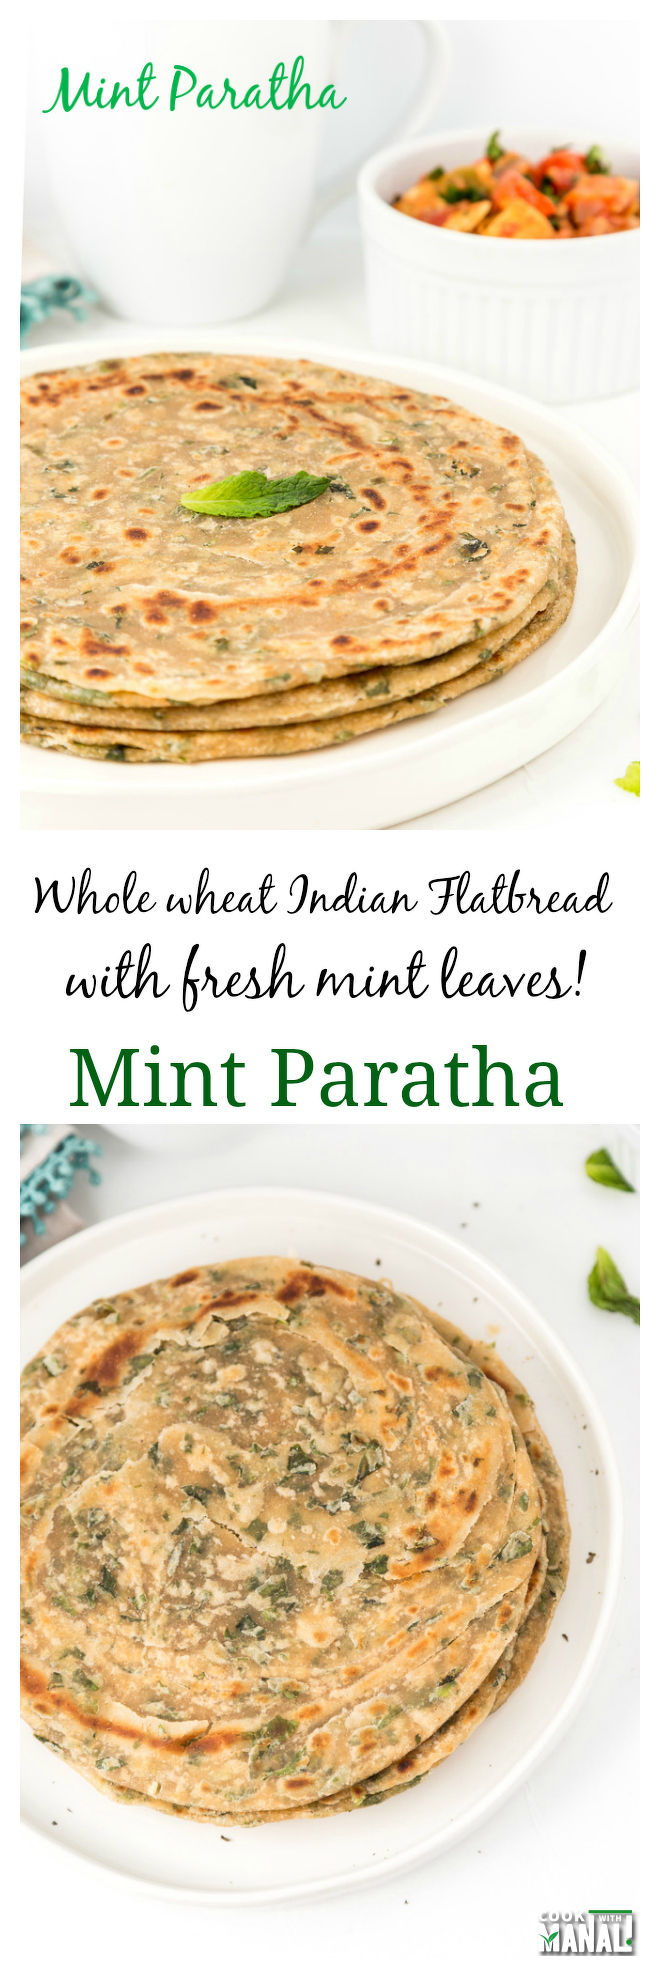 Mint Paratha - Cook With Manali